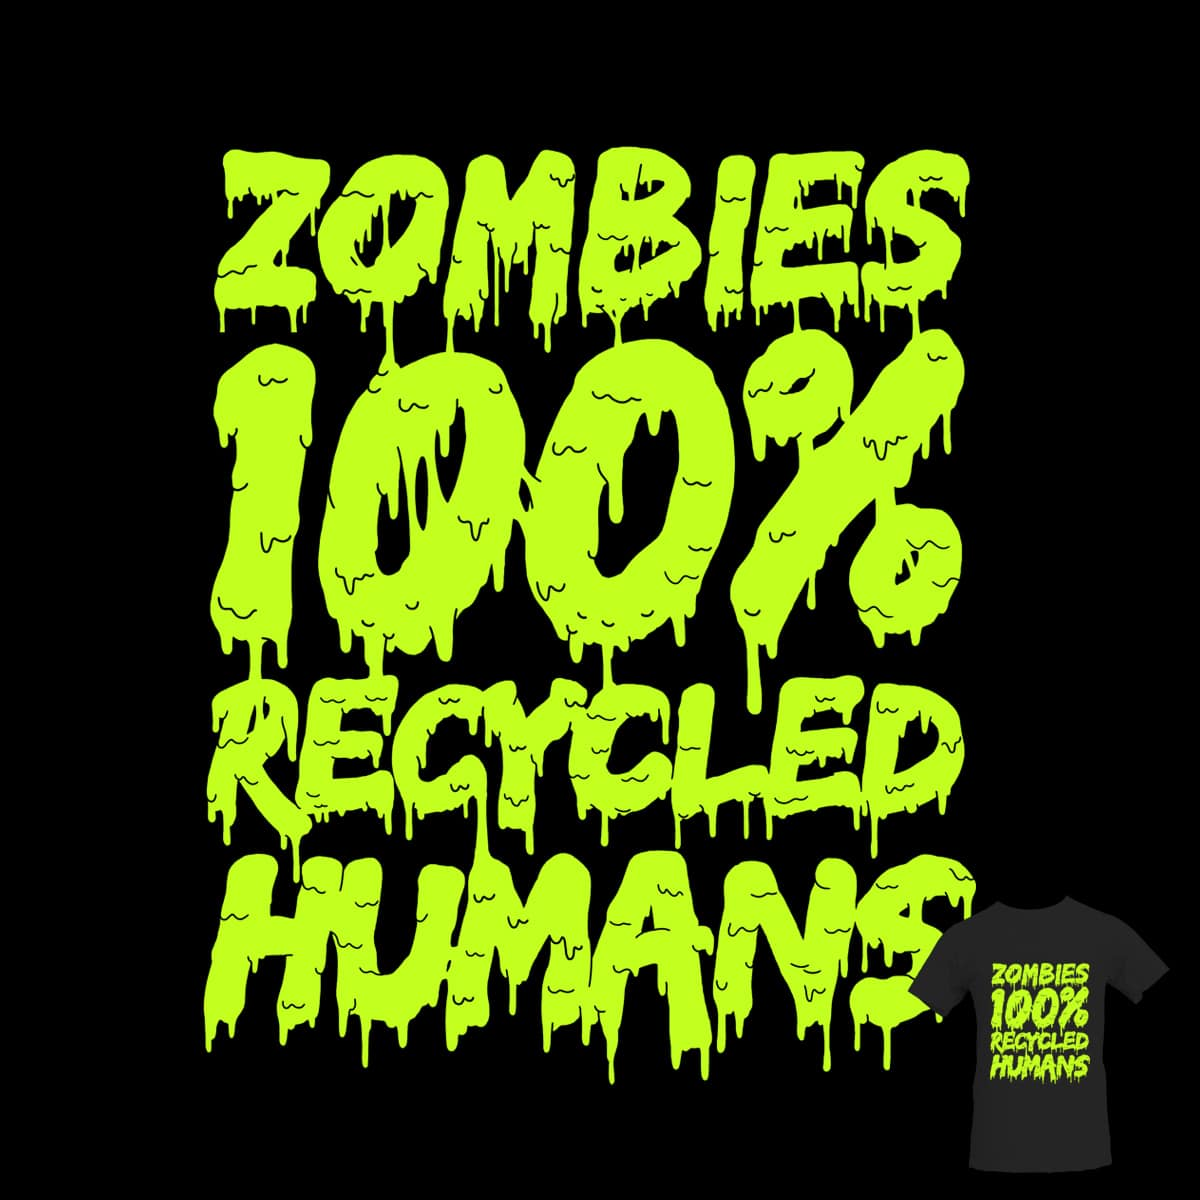 100% Recycled Humans by nerrik and goliath72 on Threadless